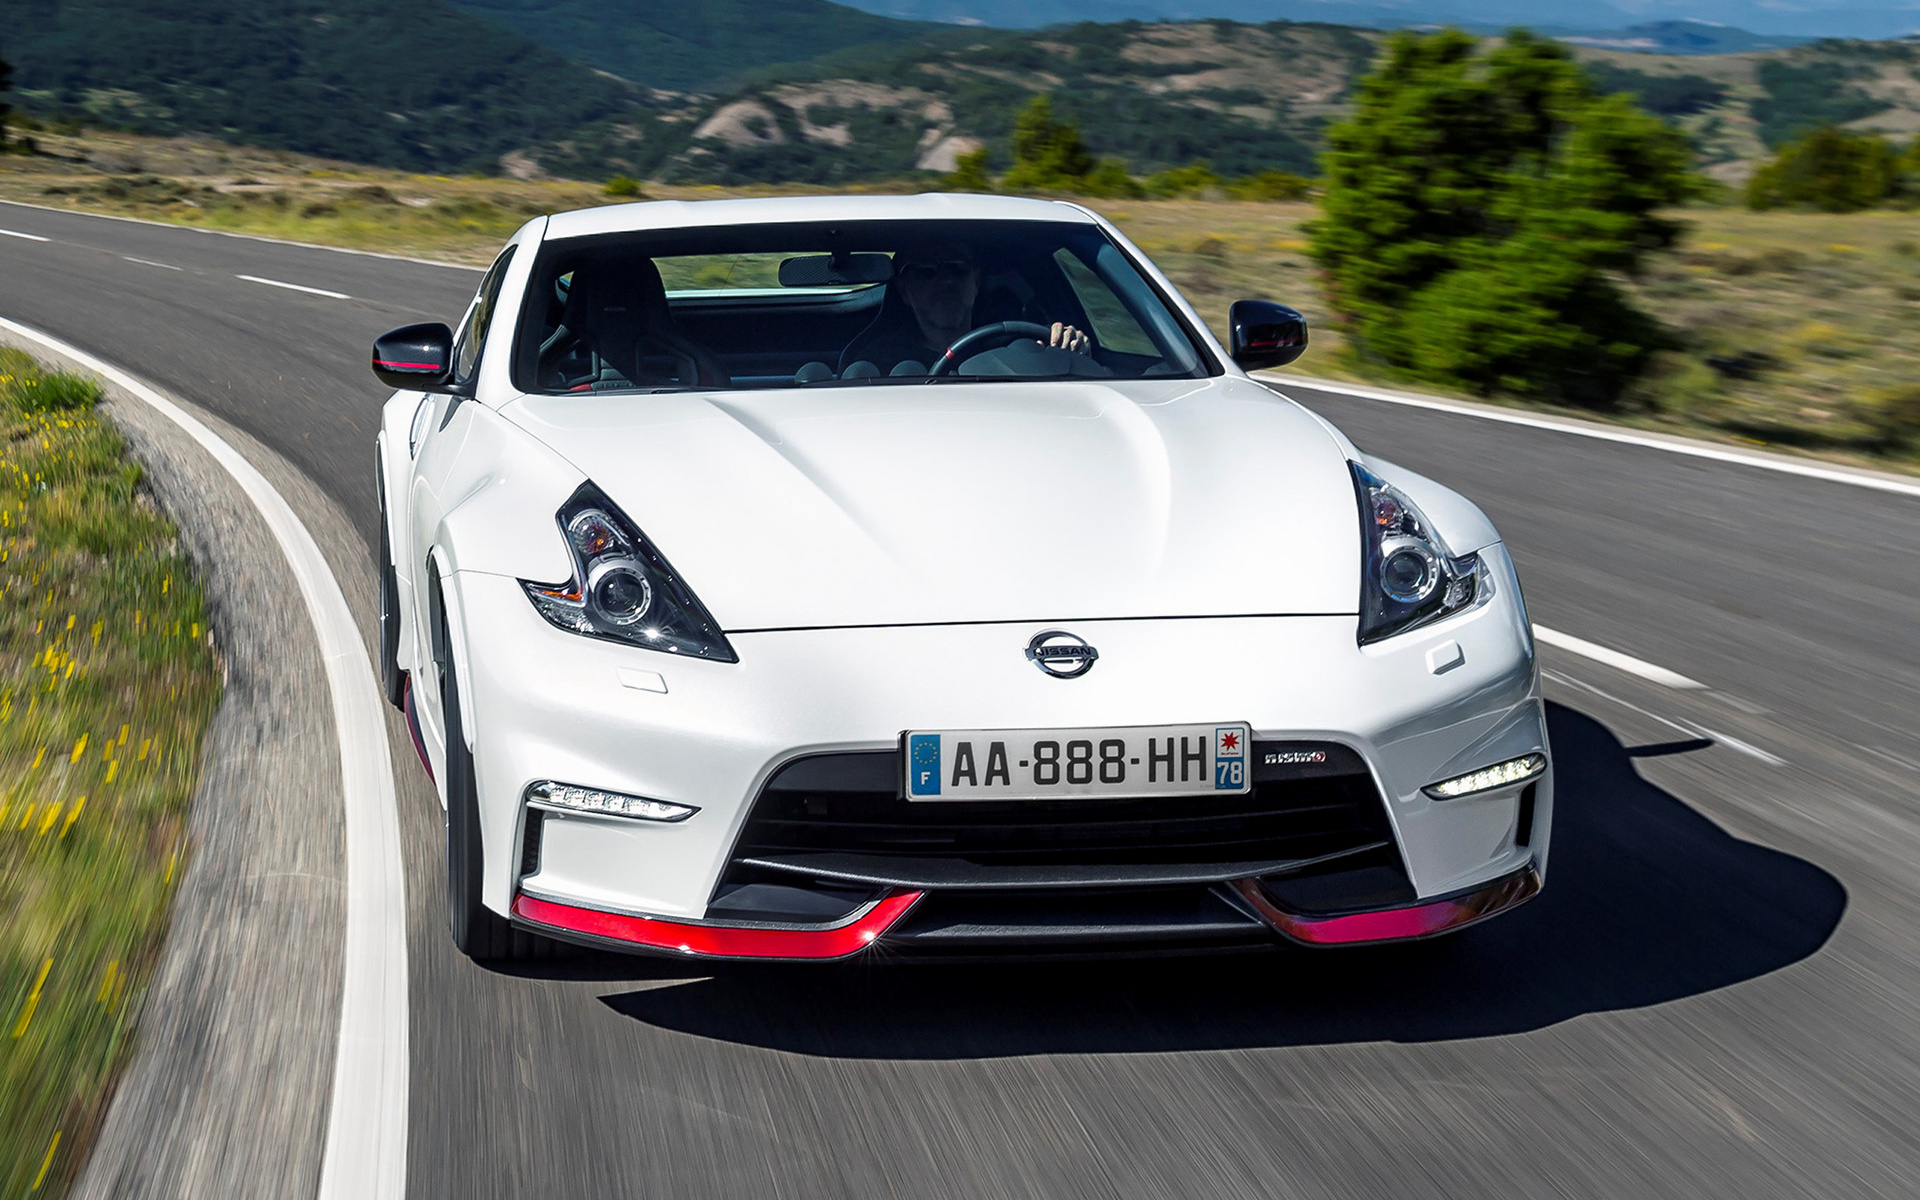 2014 Nissan 370Z Nismo - Wallpapers and HD Images | Car Pixel